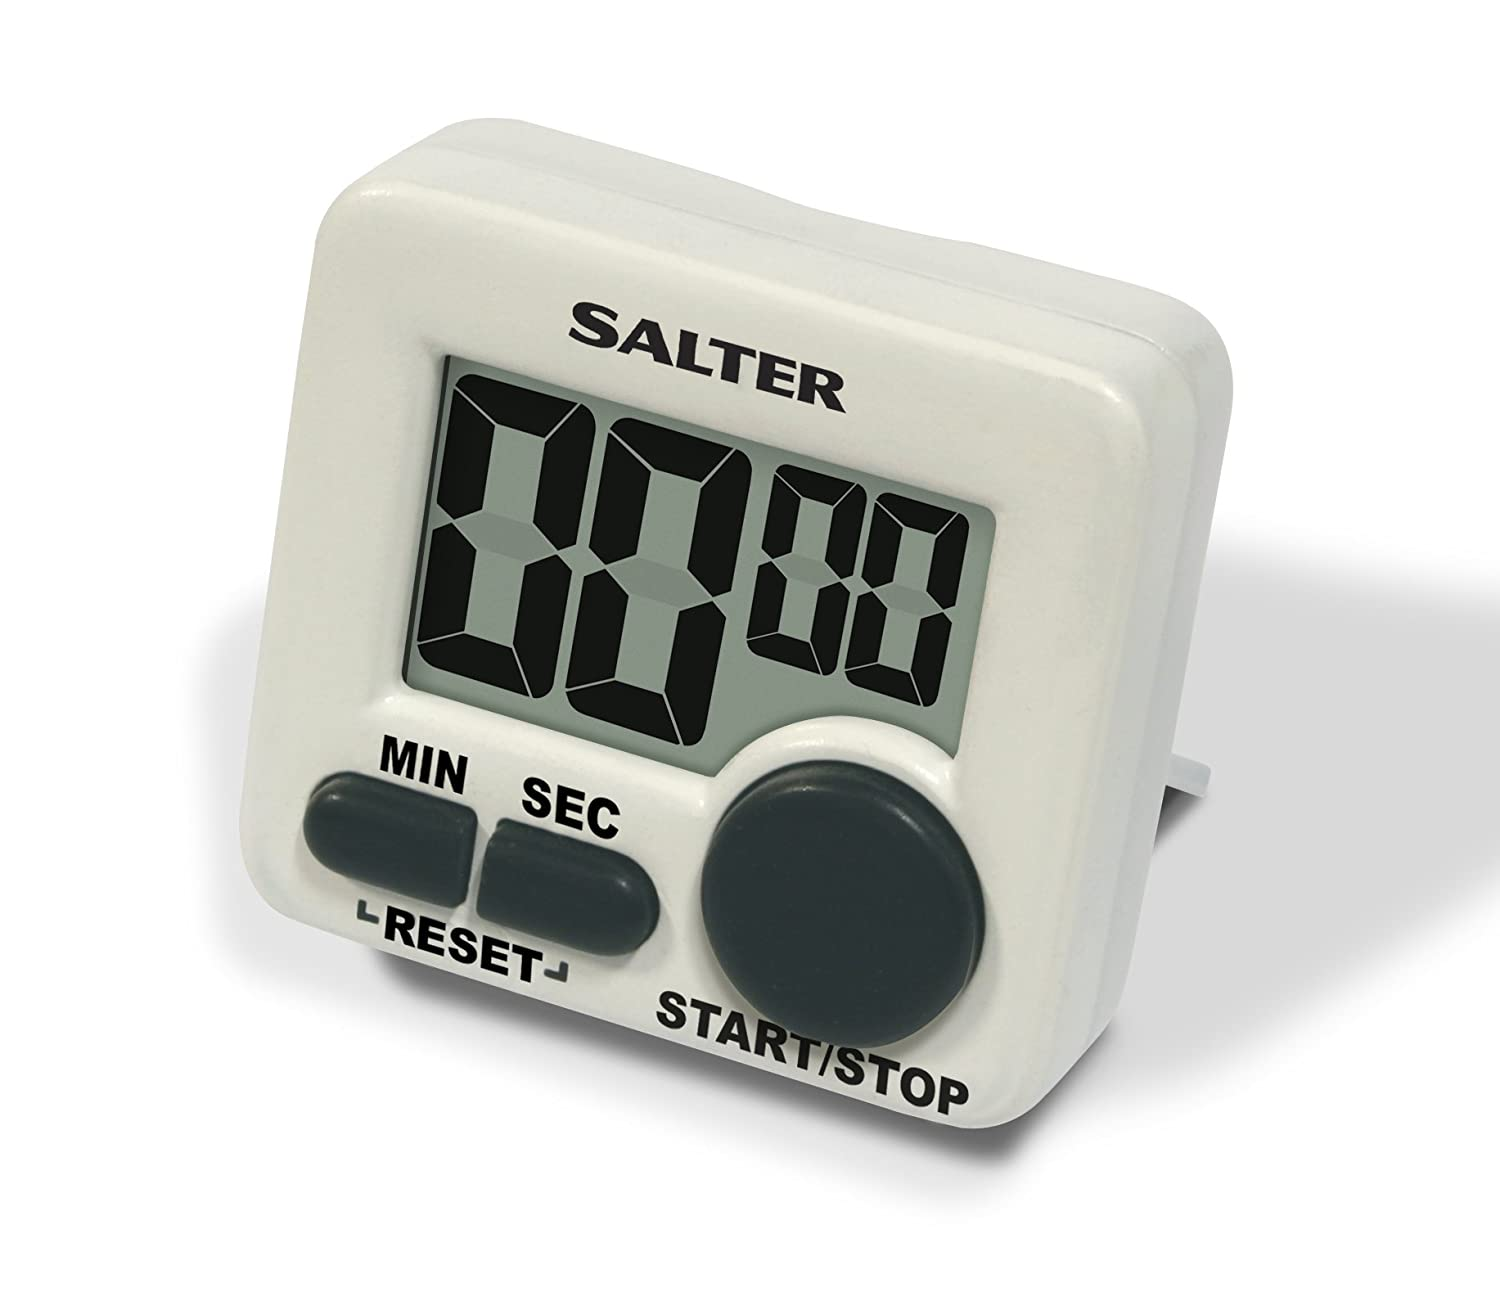 Amazon.com: Salter Mini Electronic Timer: Kitchen & Dining